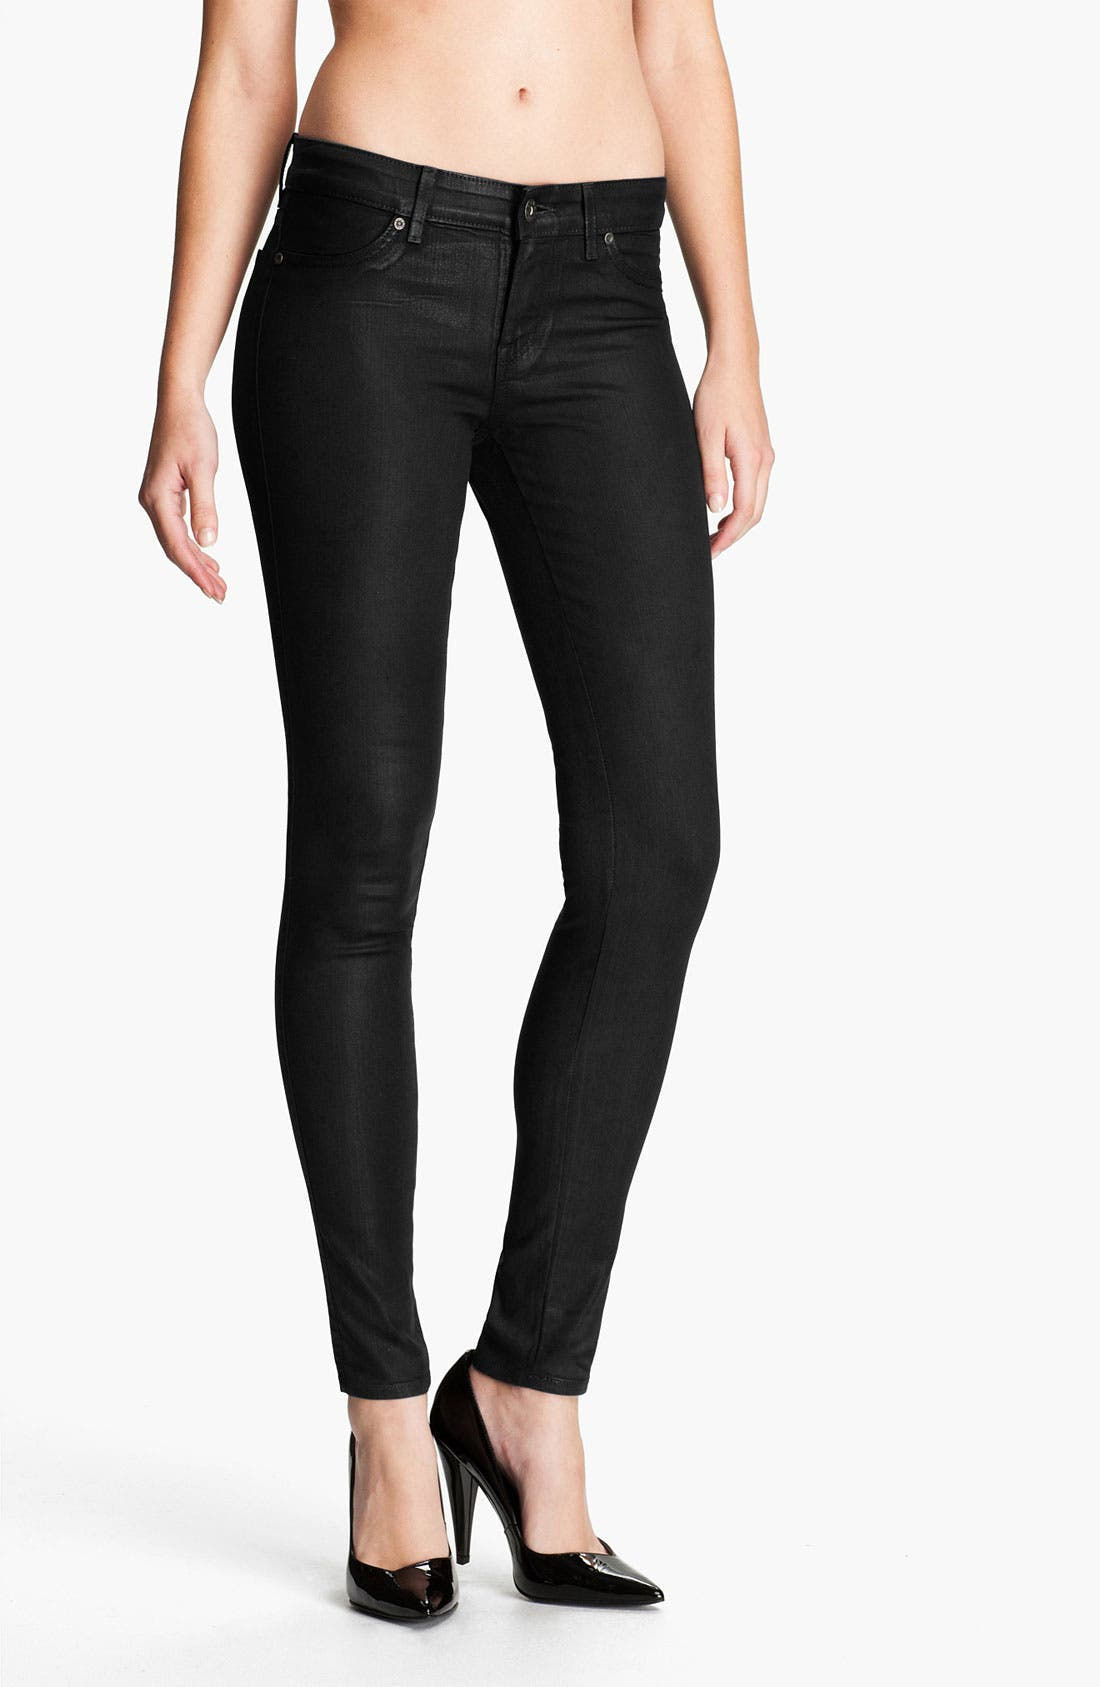 Alternate Image 1 Selected - Rich & Skinny 'Legacy Leather' Faux Leather Skinny Jeans (Tar)